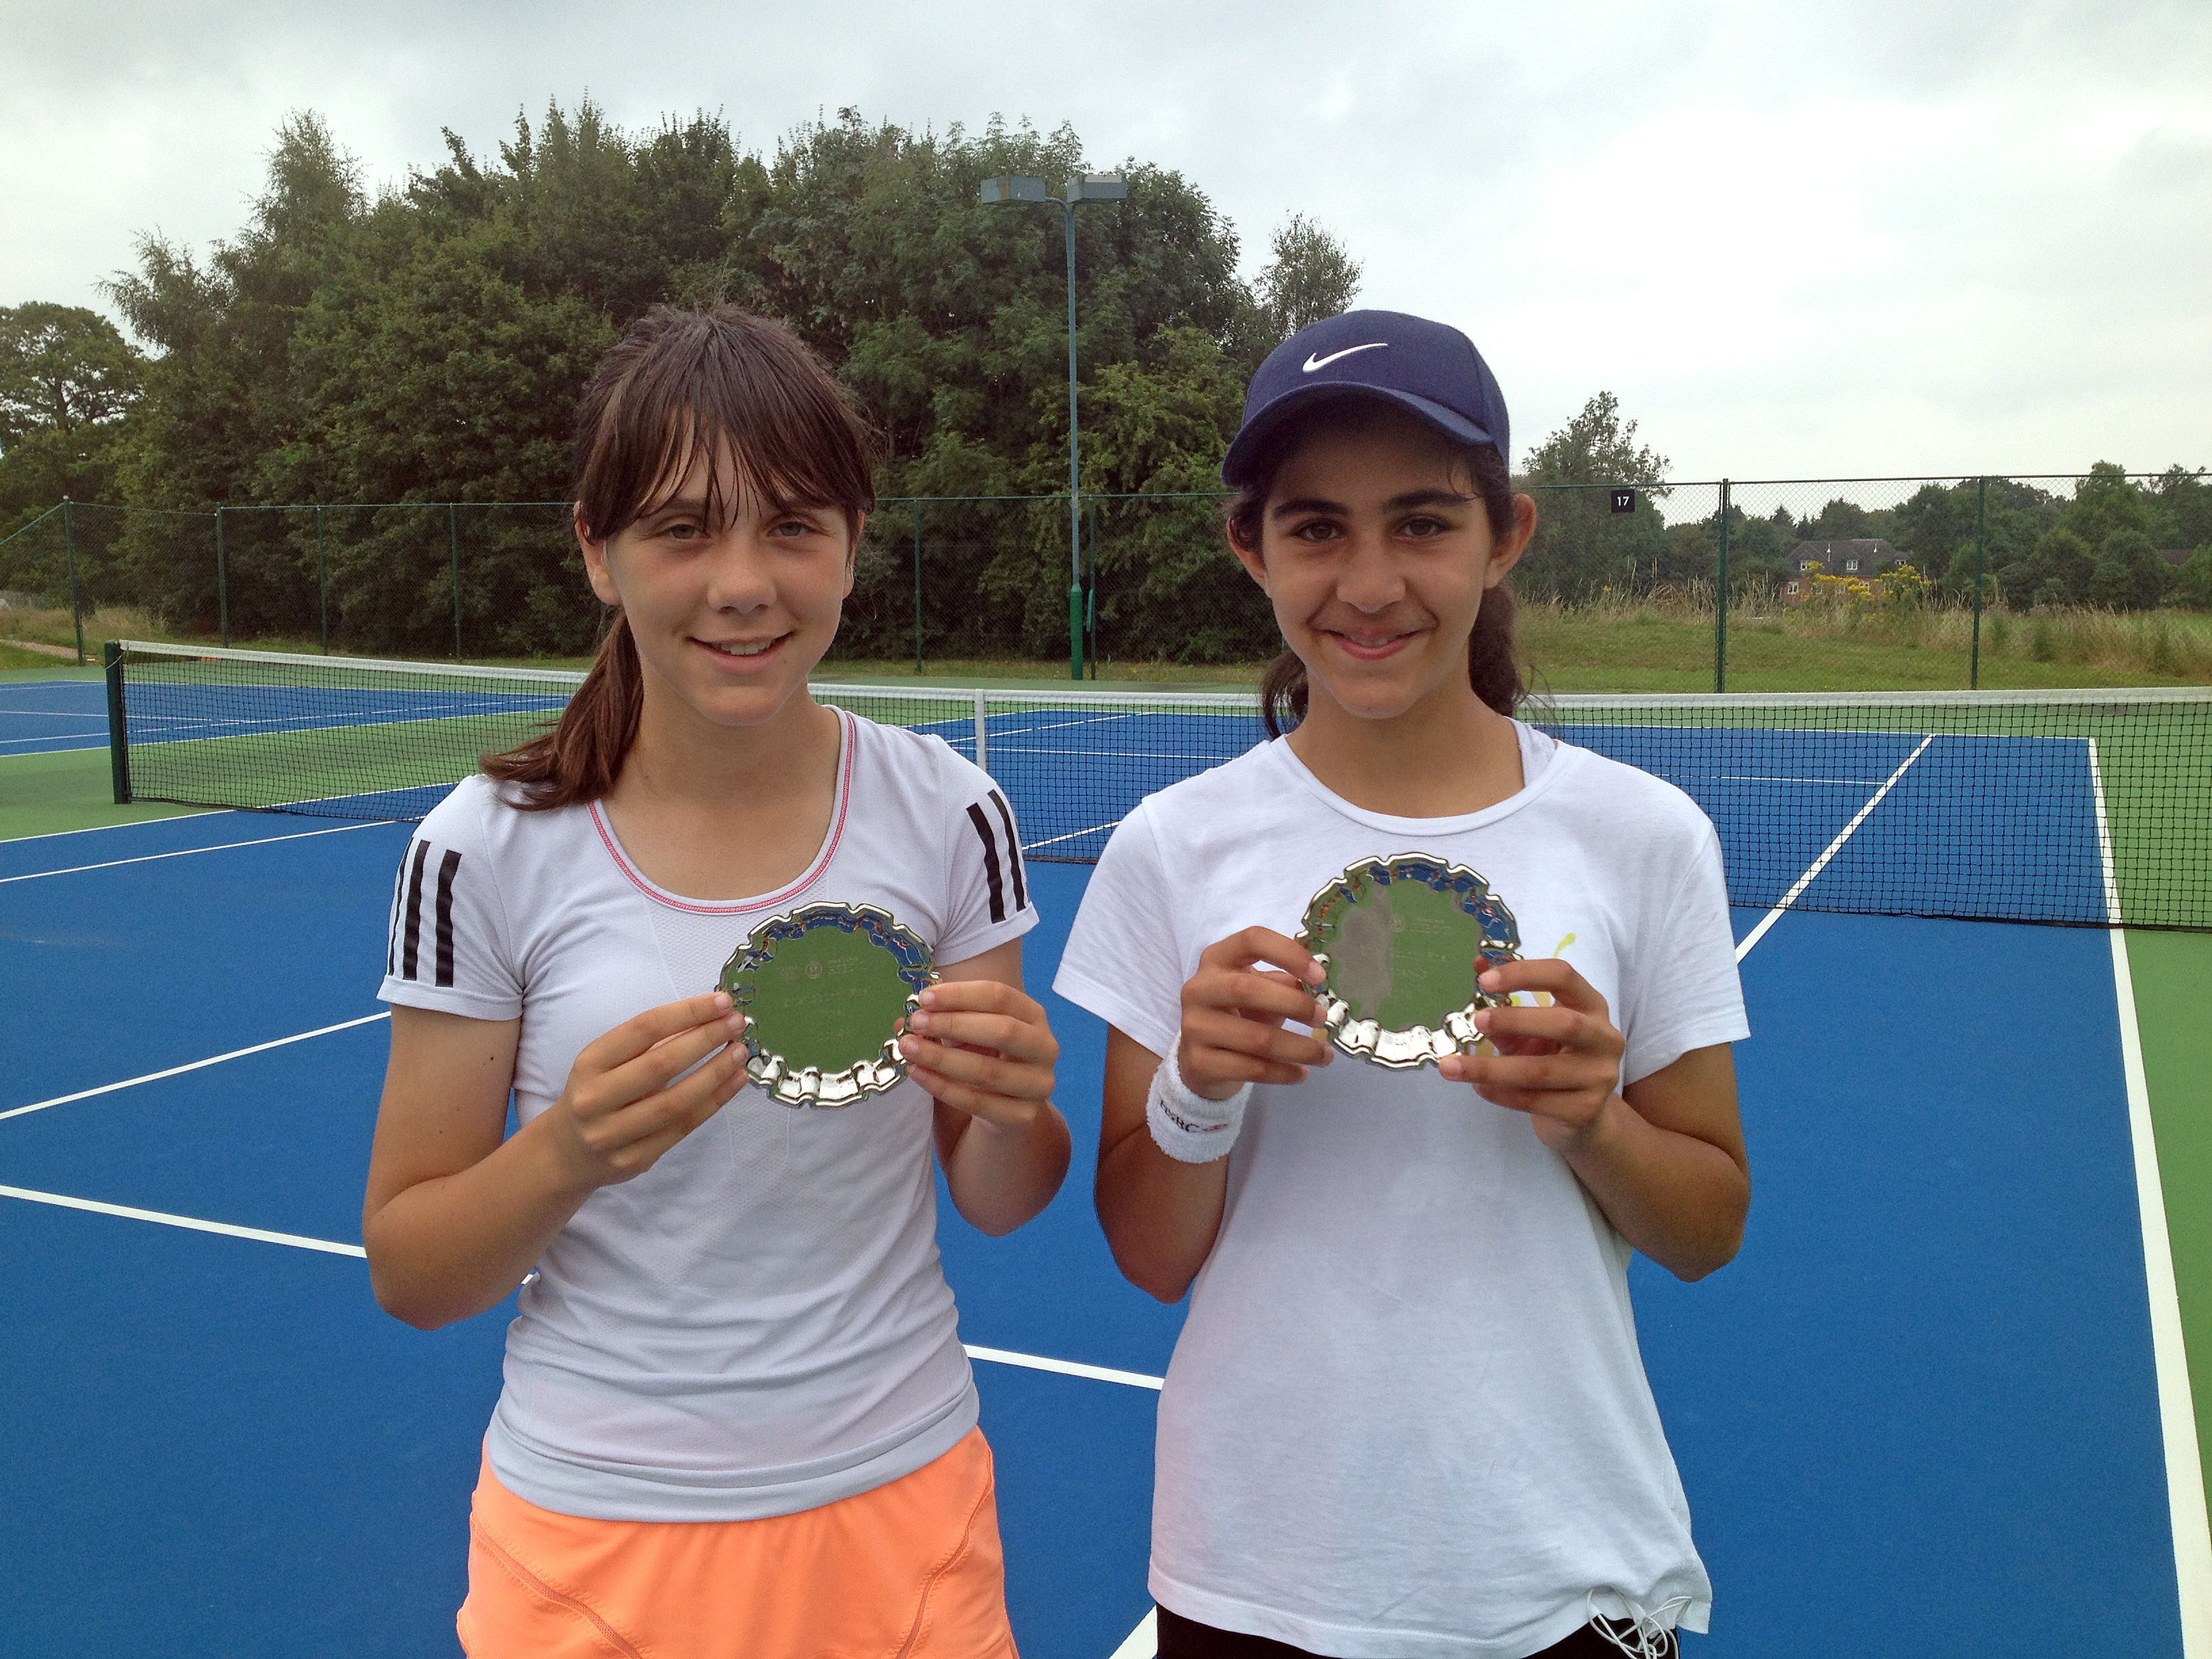 road to wimbledon county finals lta gallery